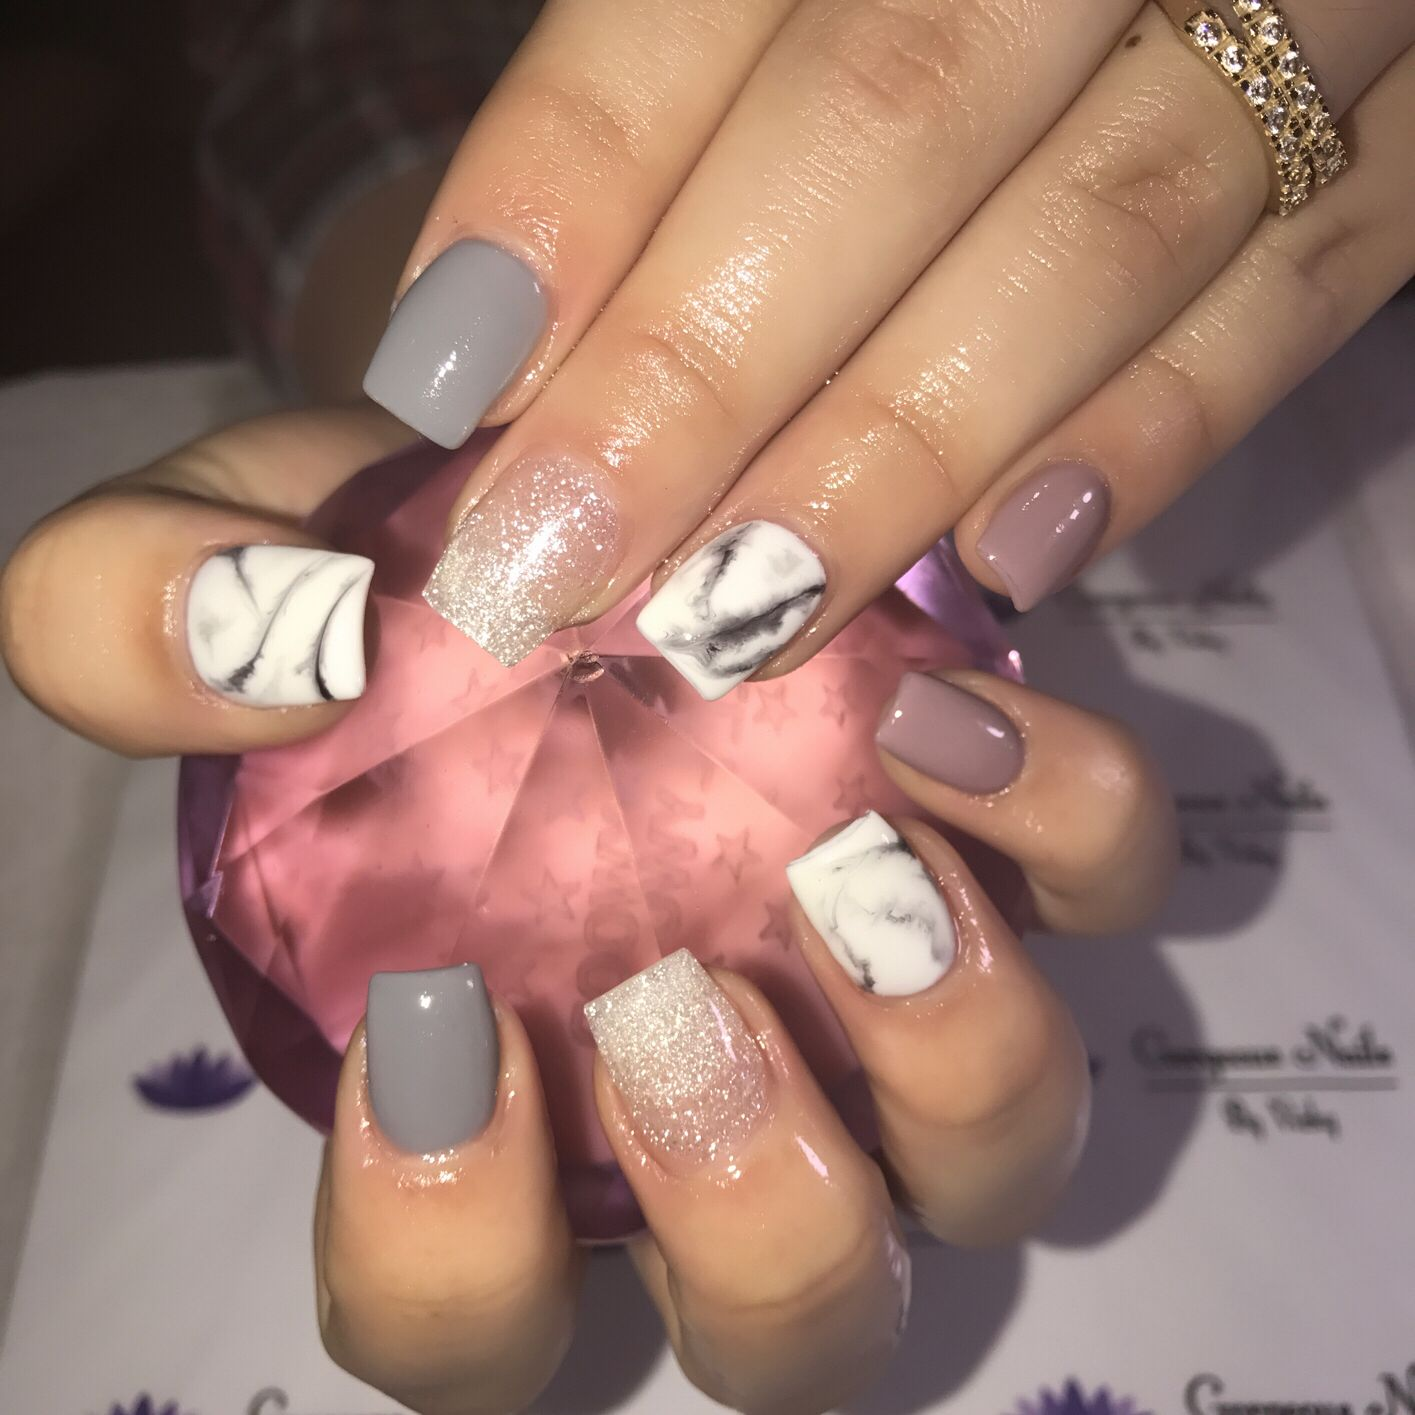 Classic short square acrylic nails gorgeous nails by vicky for summer we need shorter acrylics and simple nails designs here are some pretty short acrylic square nails ideas lets get fresh and clean for summer prinsesfo Images